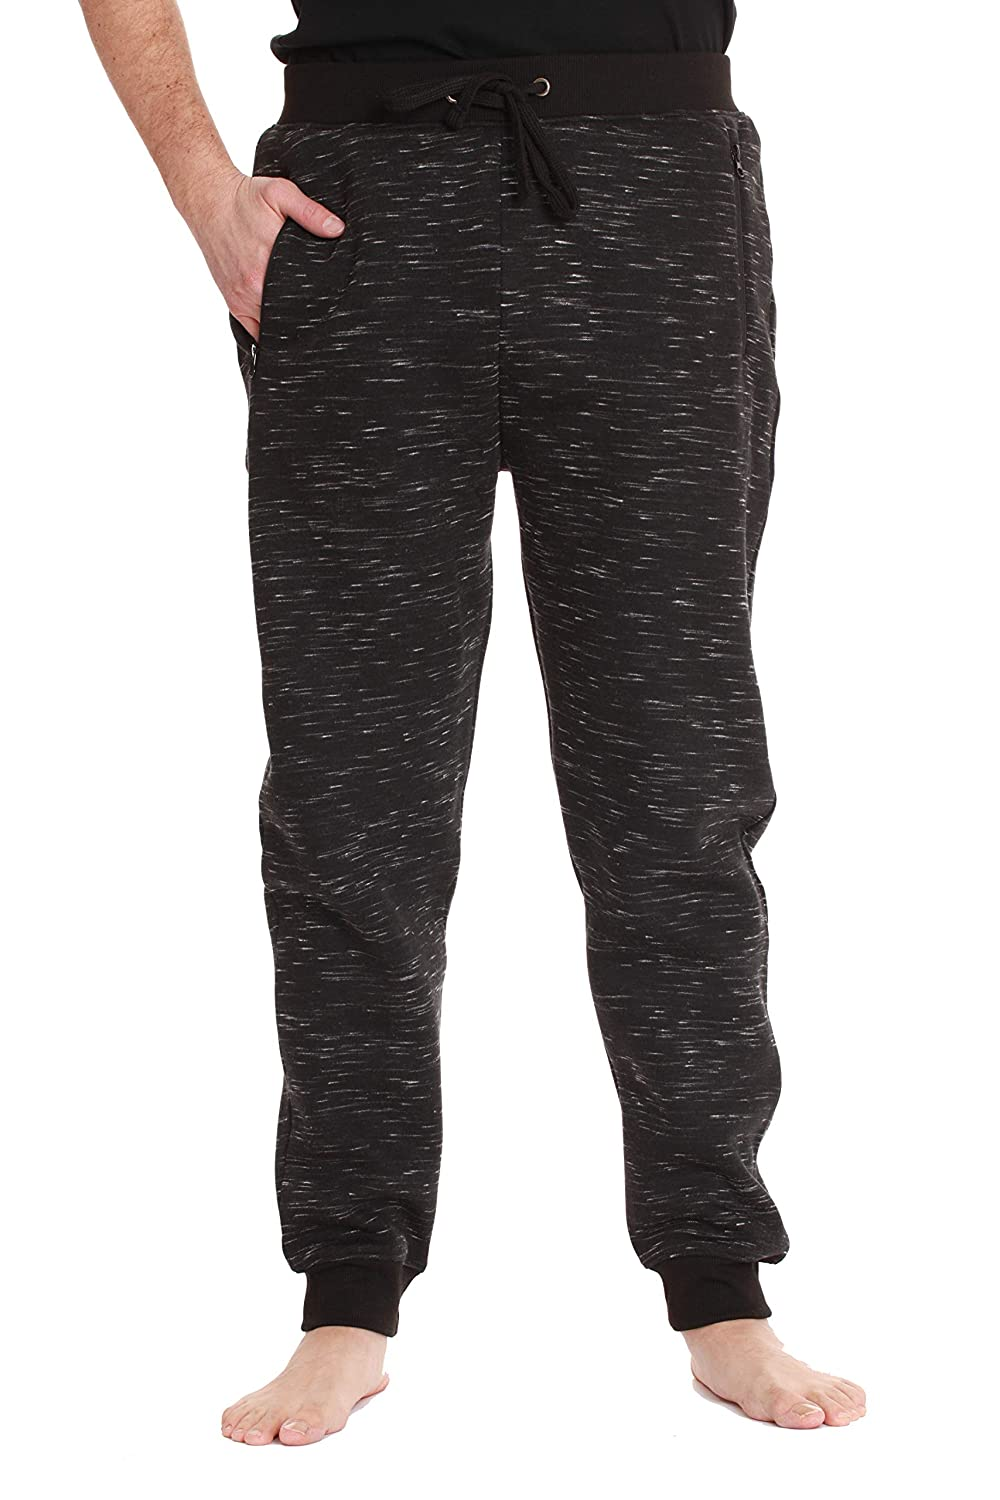 At The Buzzer Fleece Joggers Sweatpants for Men with 3 Zipper Pockets